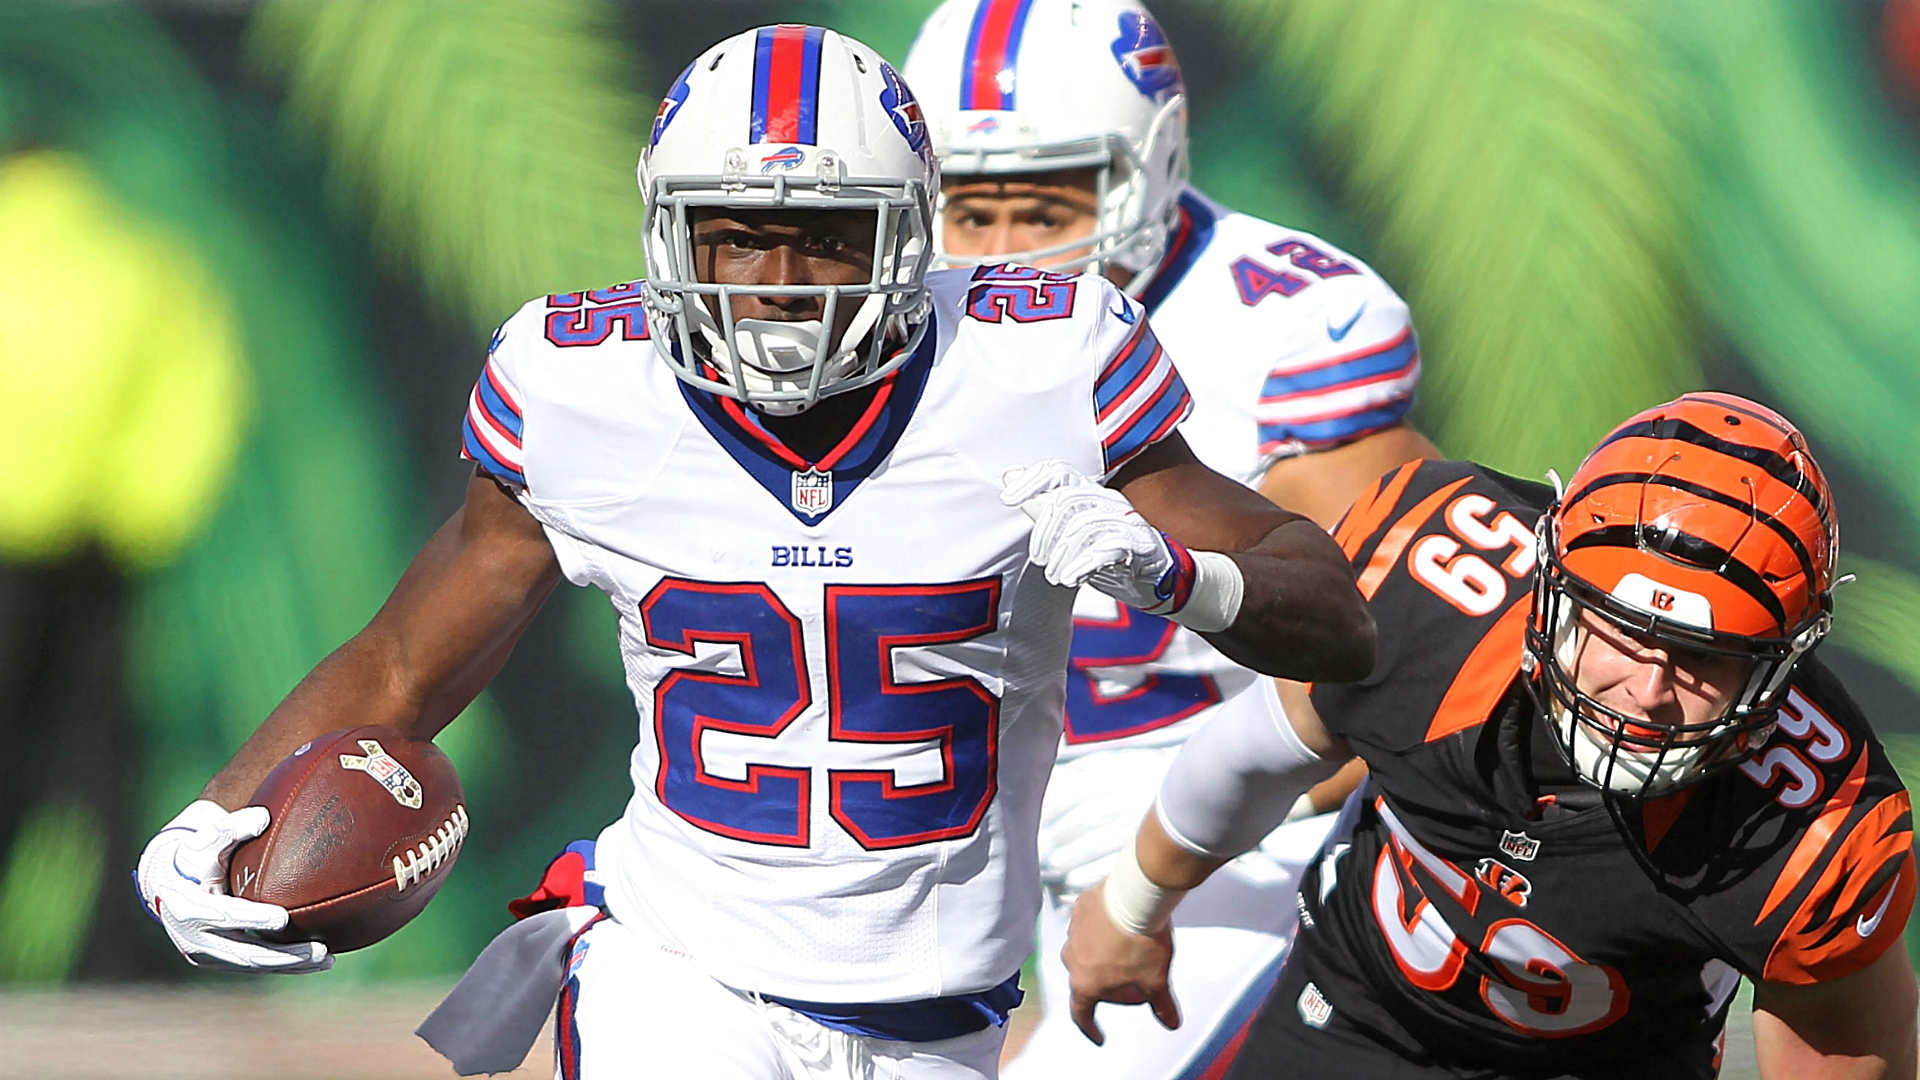 LeSean McCoy's thumb injury sounds worse than it is | NFL | Sporting News